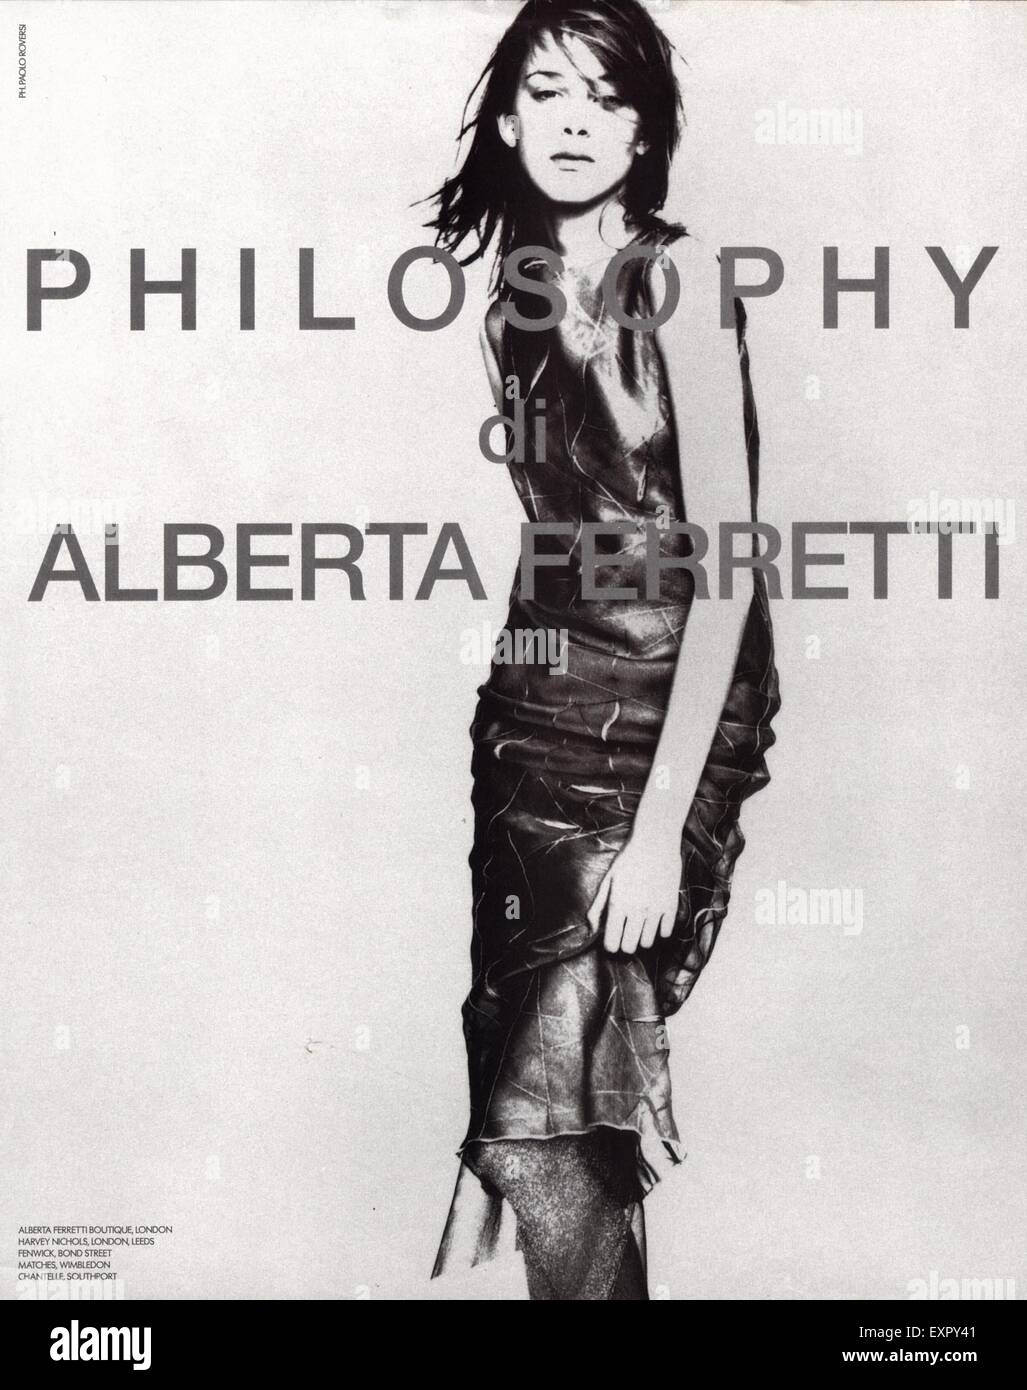 1990s UK Alberta Ferretti Philosophy Magazine Advert - Stock Image